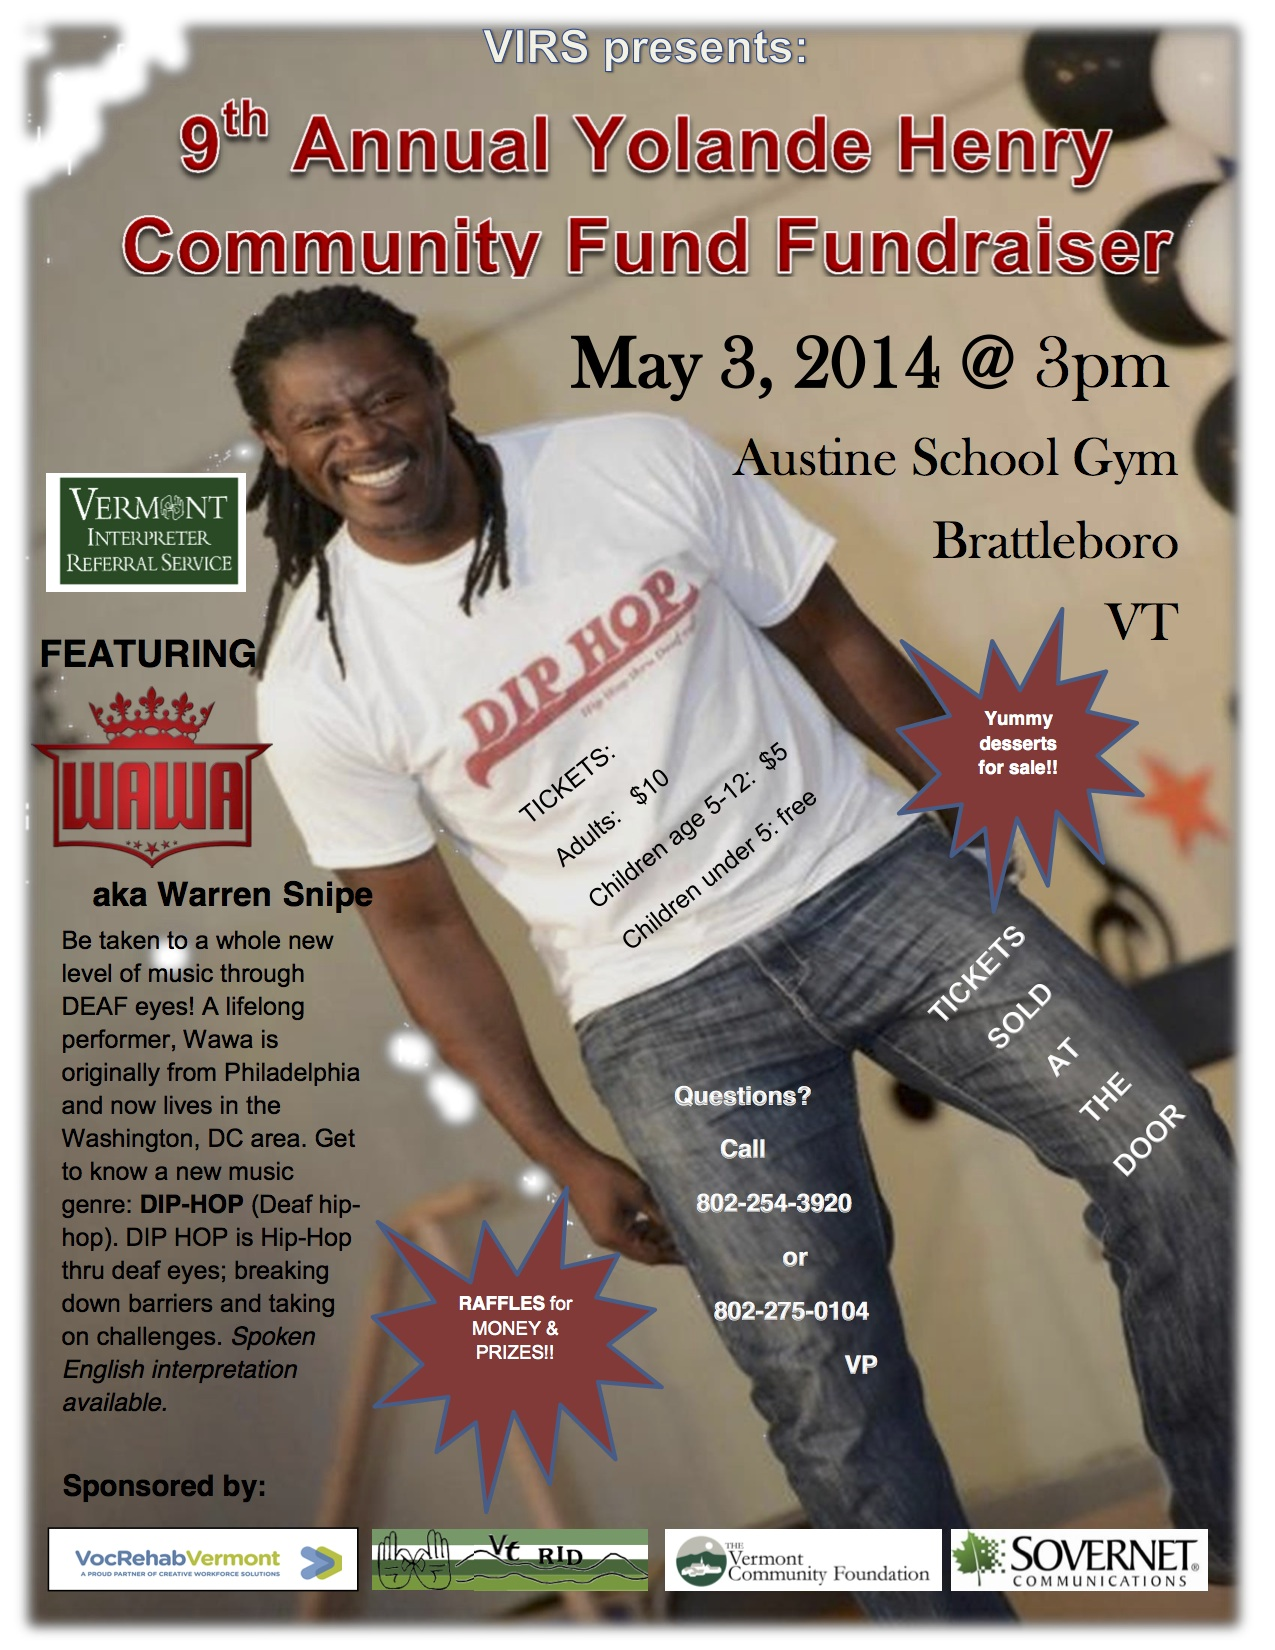 VIRS 9th Annual Community Fund Fundraiser